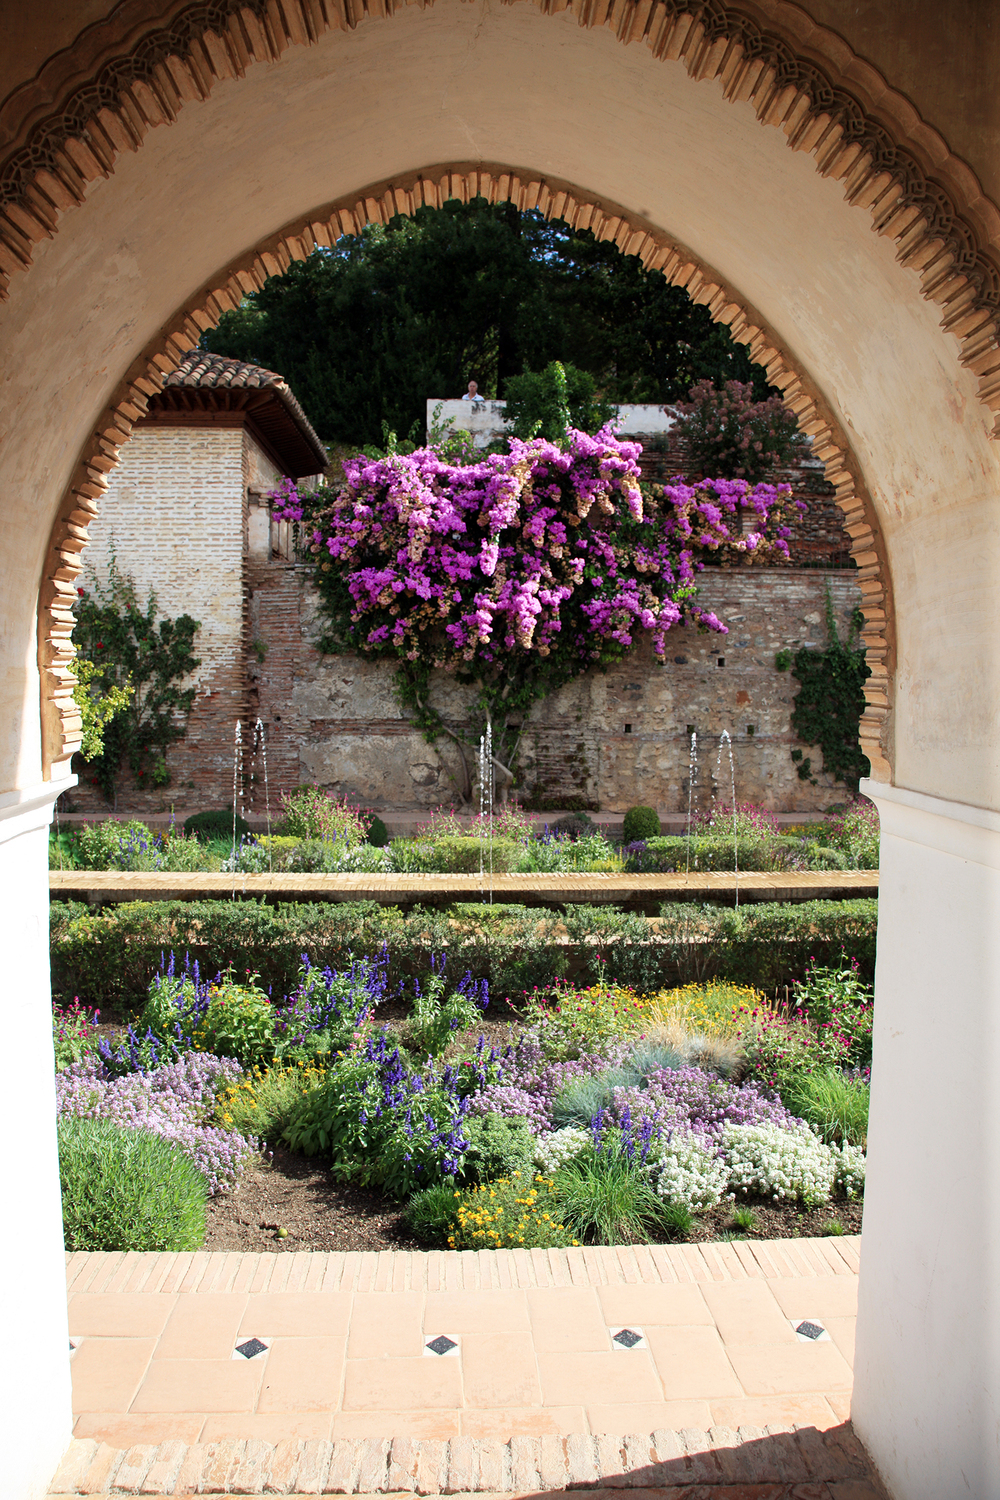 The Garden at Alhambra